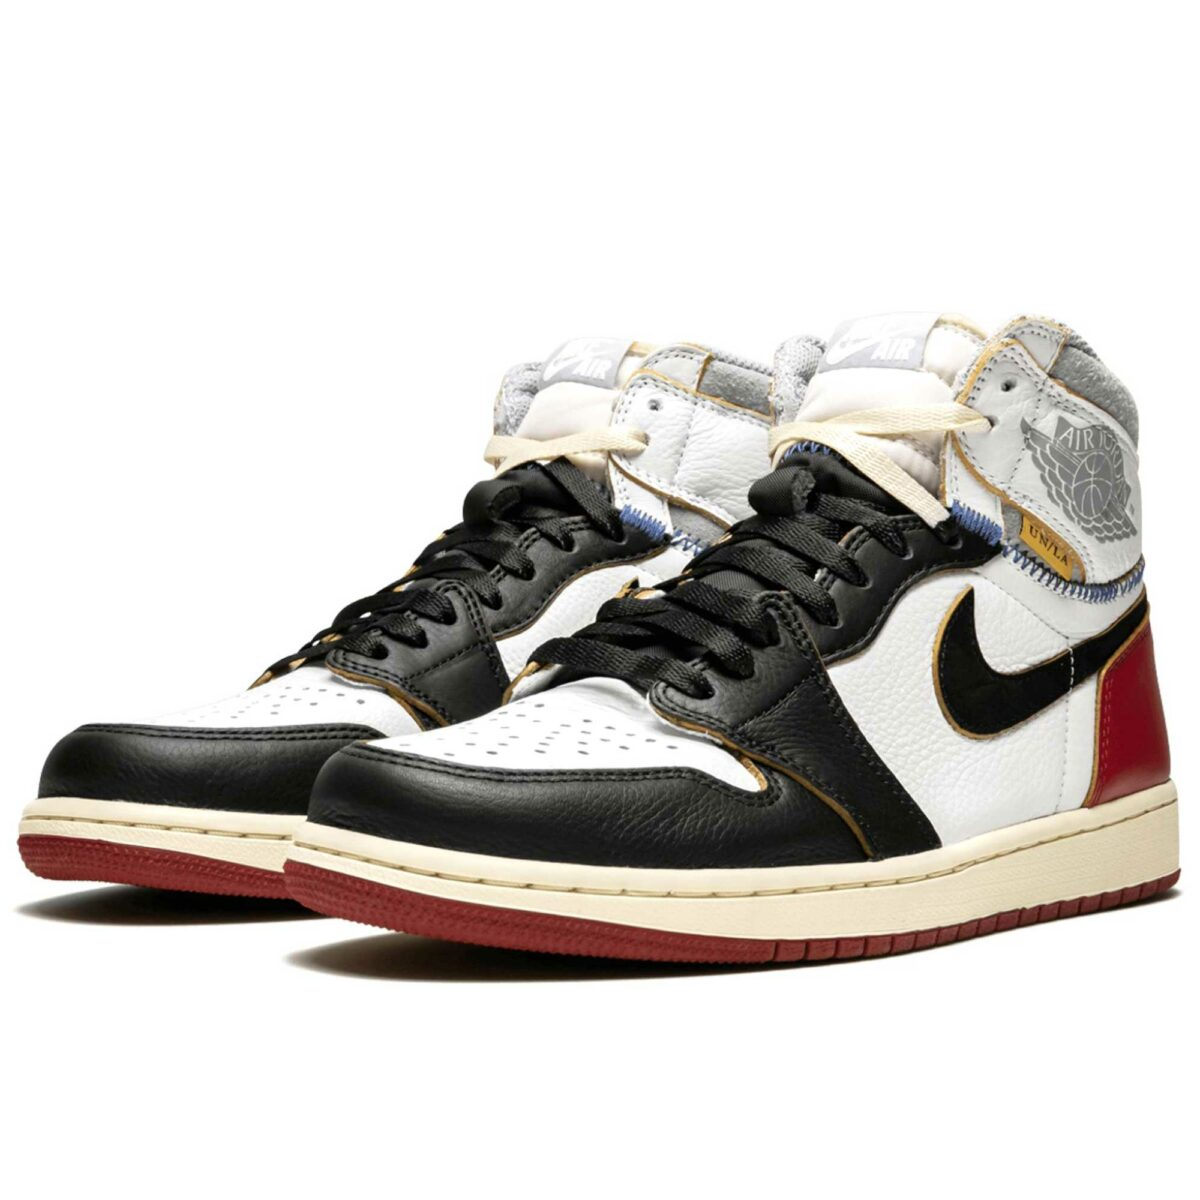 nike air Jordan 1 retro hi union black toe BV1300_106 купить